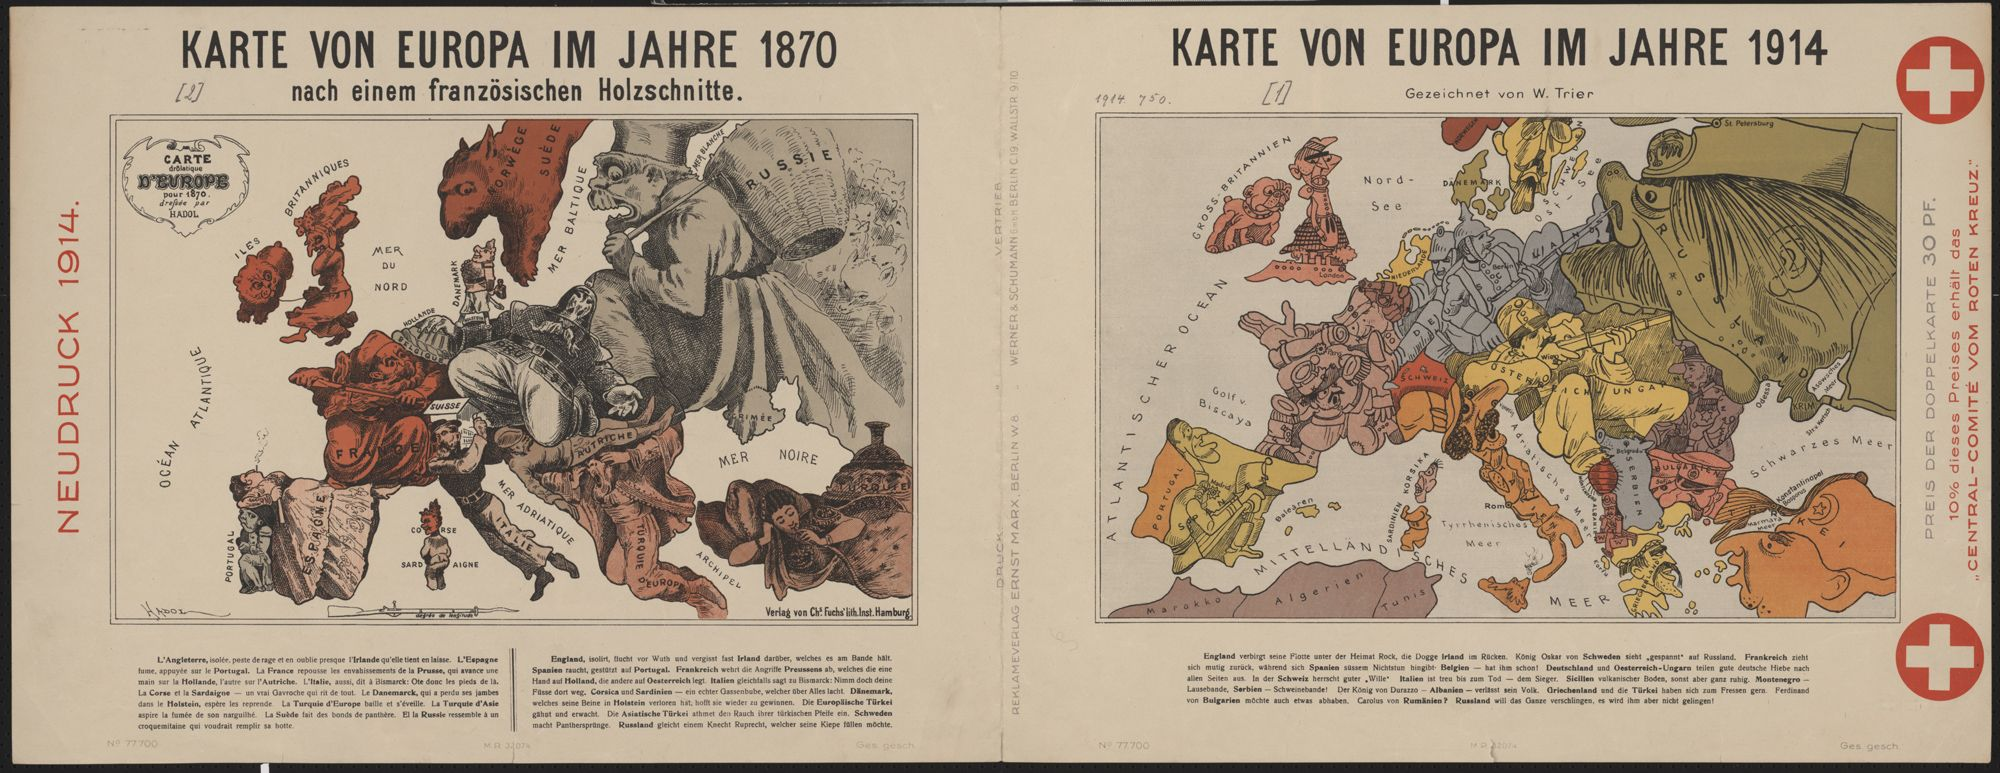 World War I posterSatirical maps comparing the